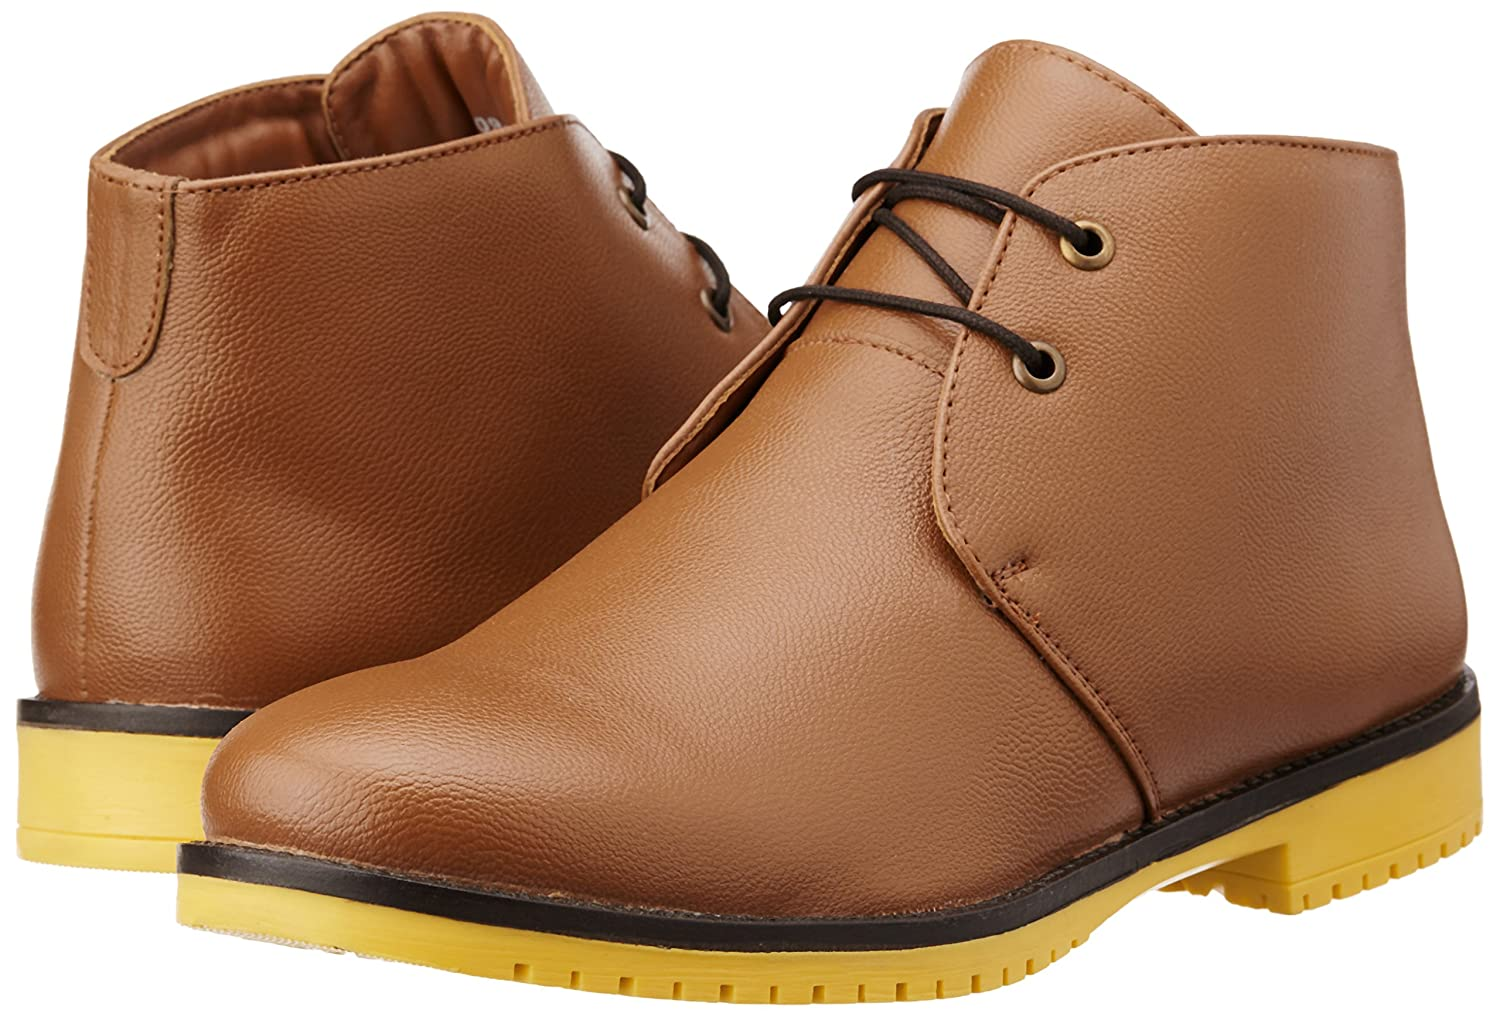 Upto 60% off On Boots For The Season By Amazon | Bata Men's Jay Z Boots @ Rs.1,199